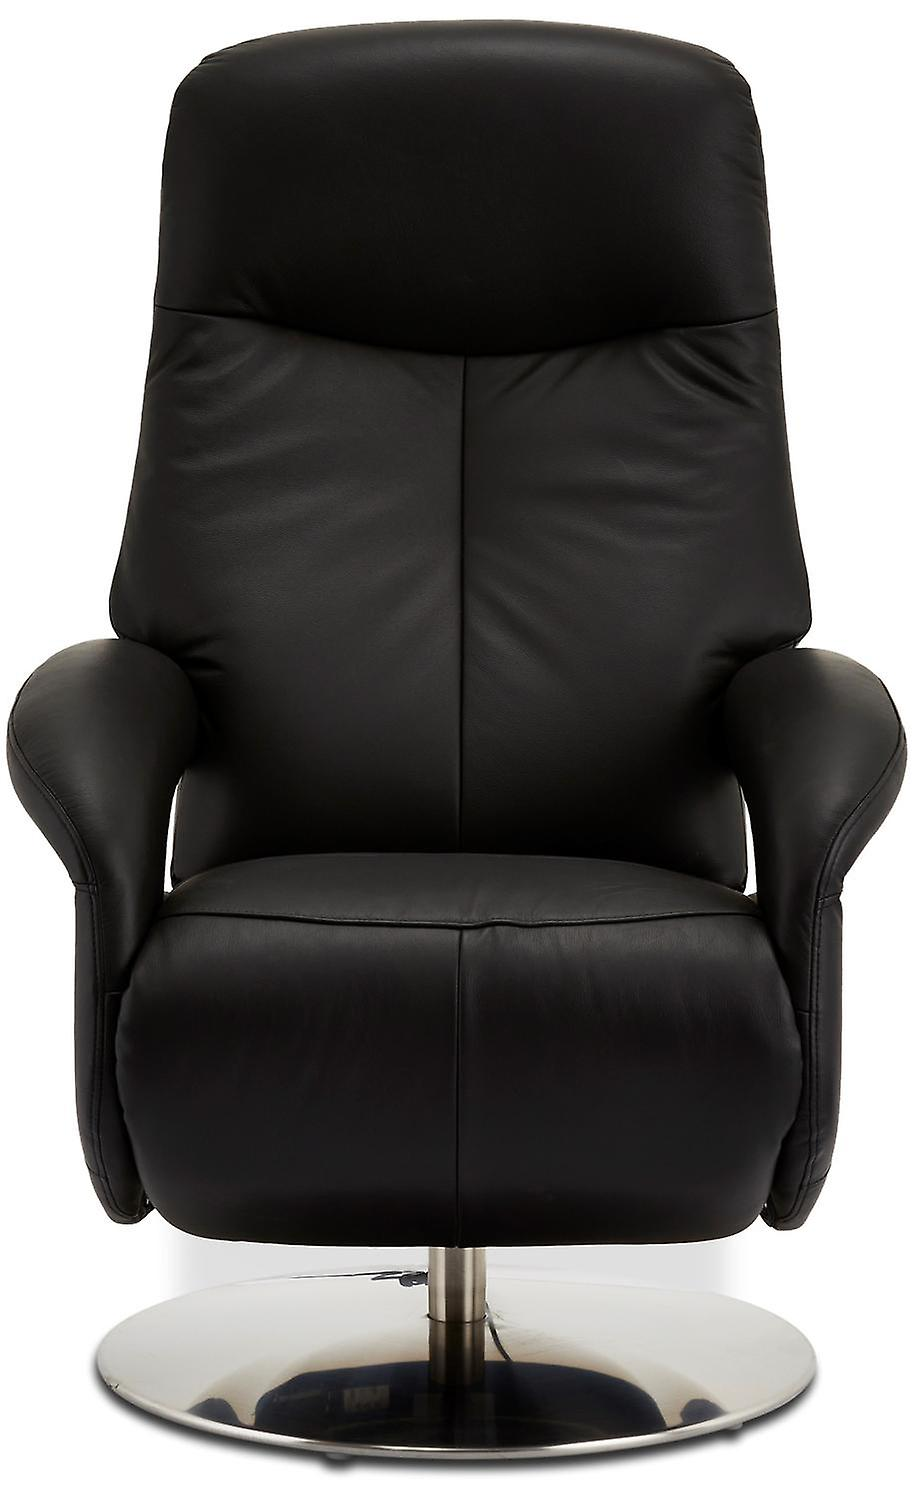 Furnhouse Black Leather Recliner Bull, 1 Seater, 79x85x115 cm